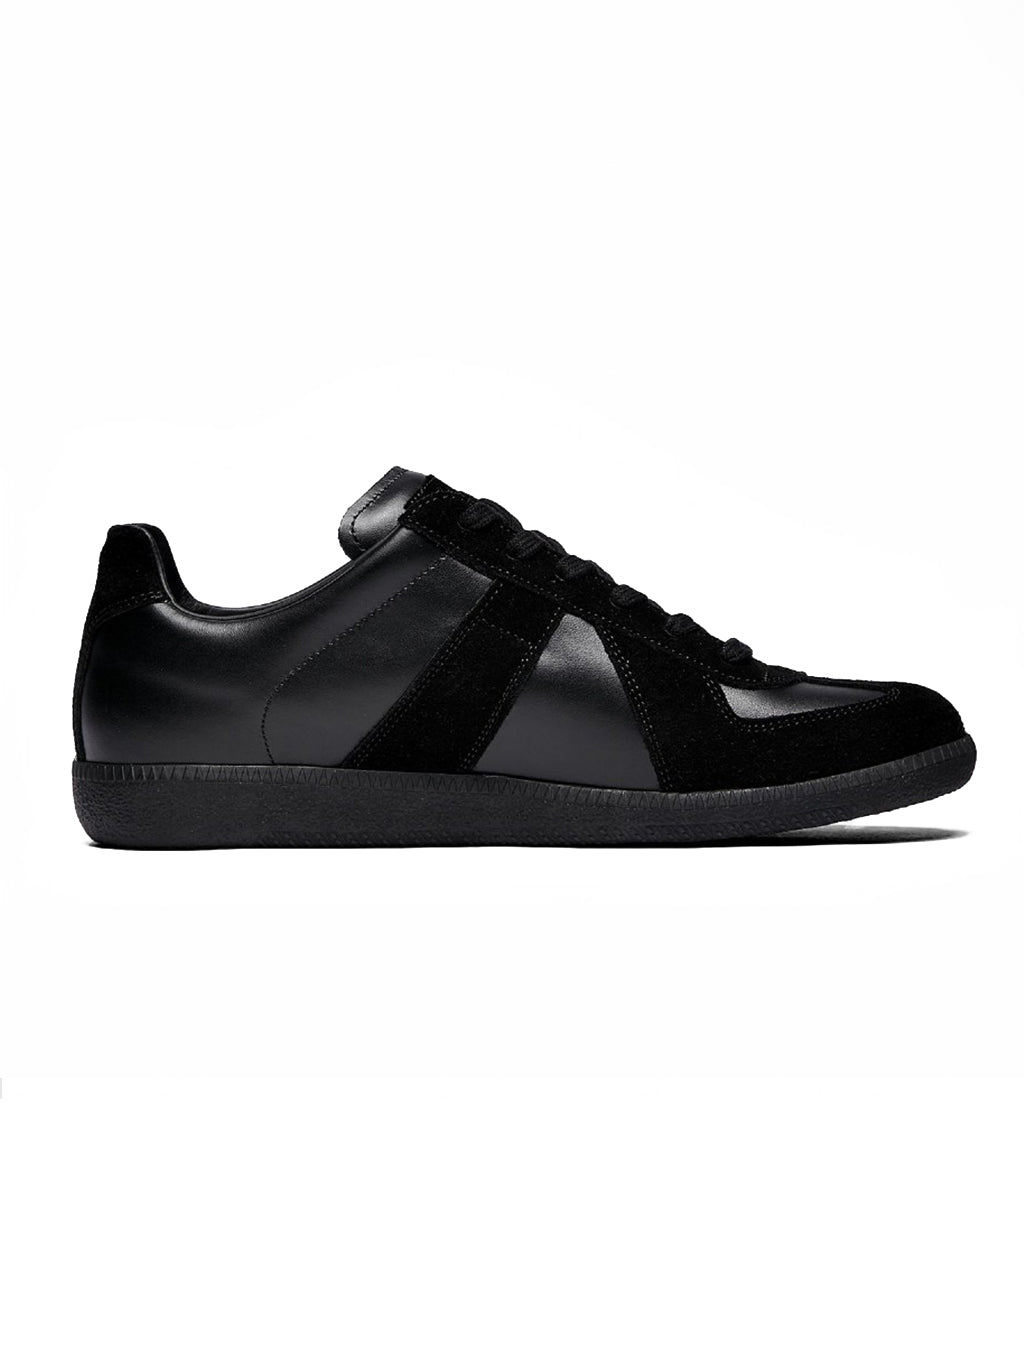 Black Replica Low Top Sneaker